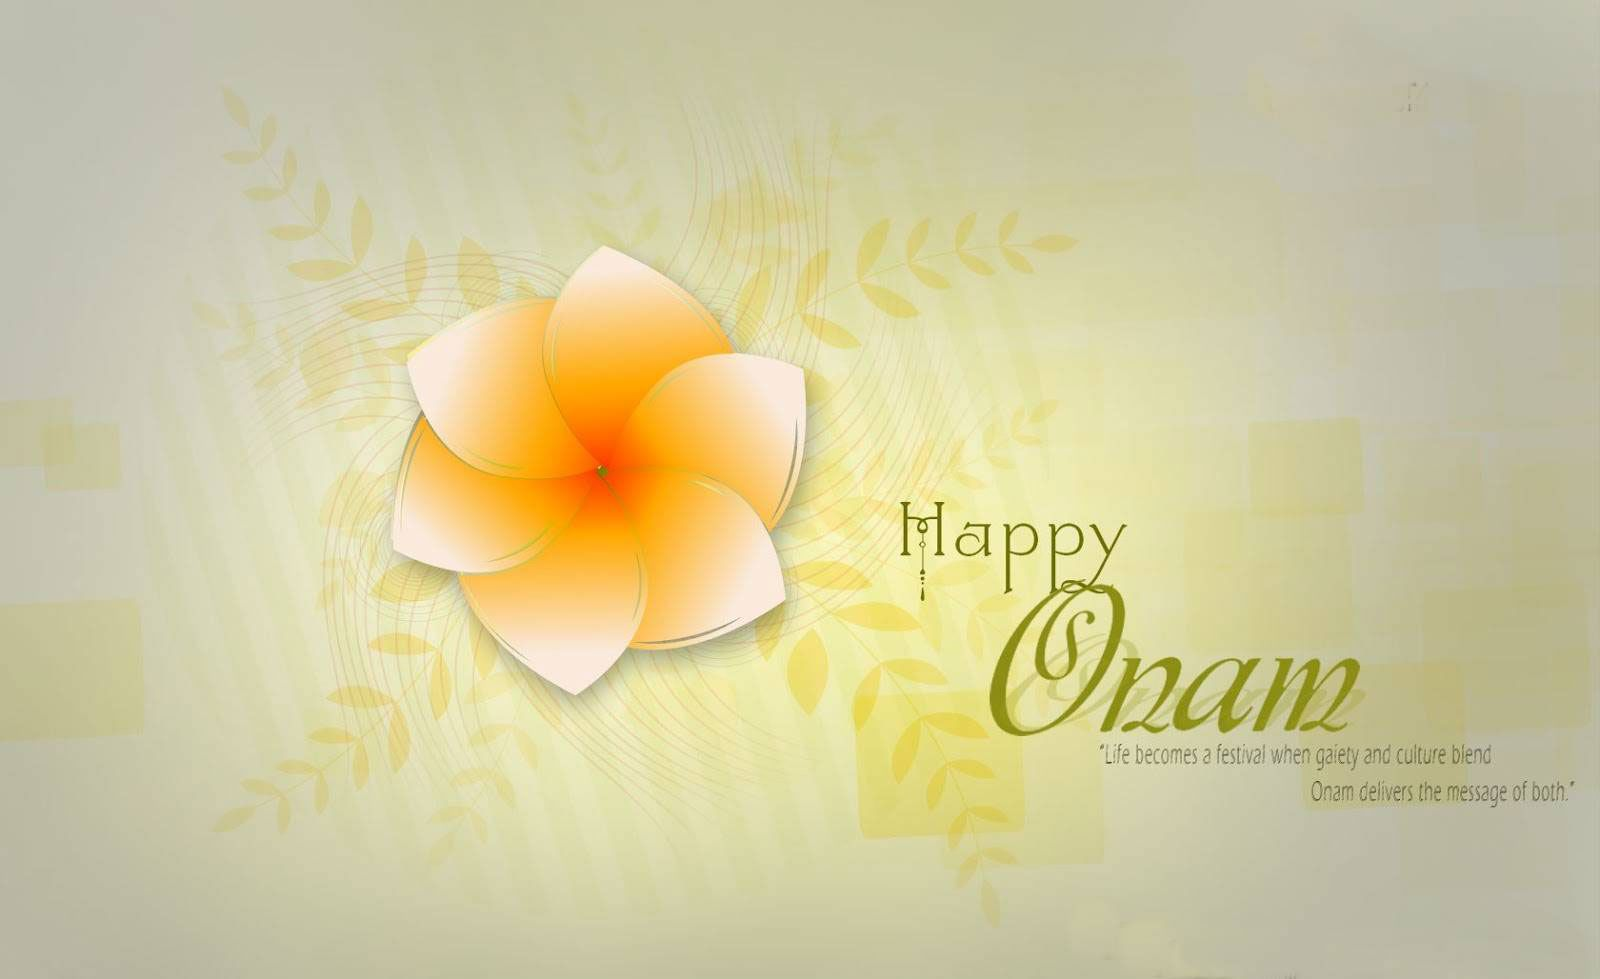 Happy onam 2014 wishes images onam wishes quotes and greetings explore happy onam wishes wishes images and more kristyandbryce Gallery